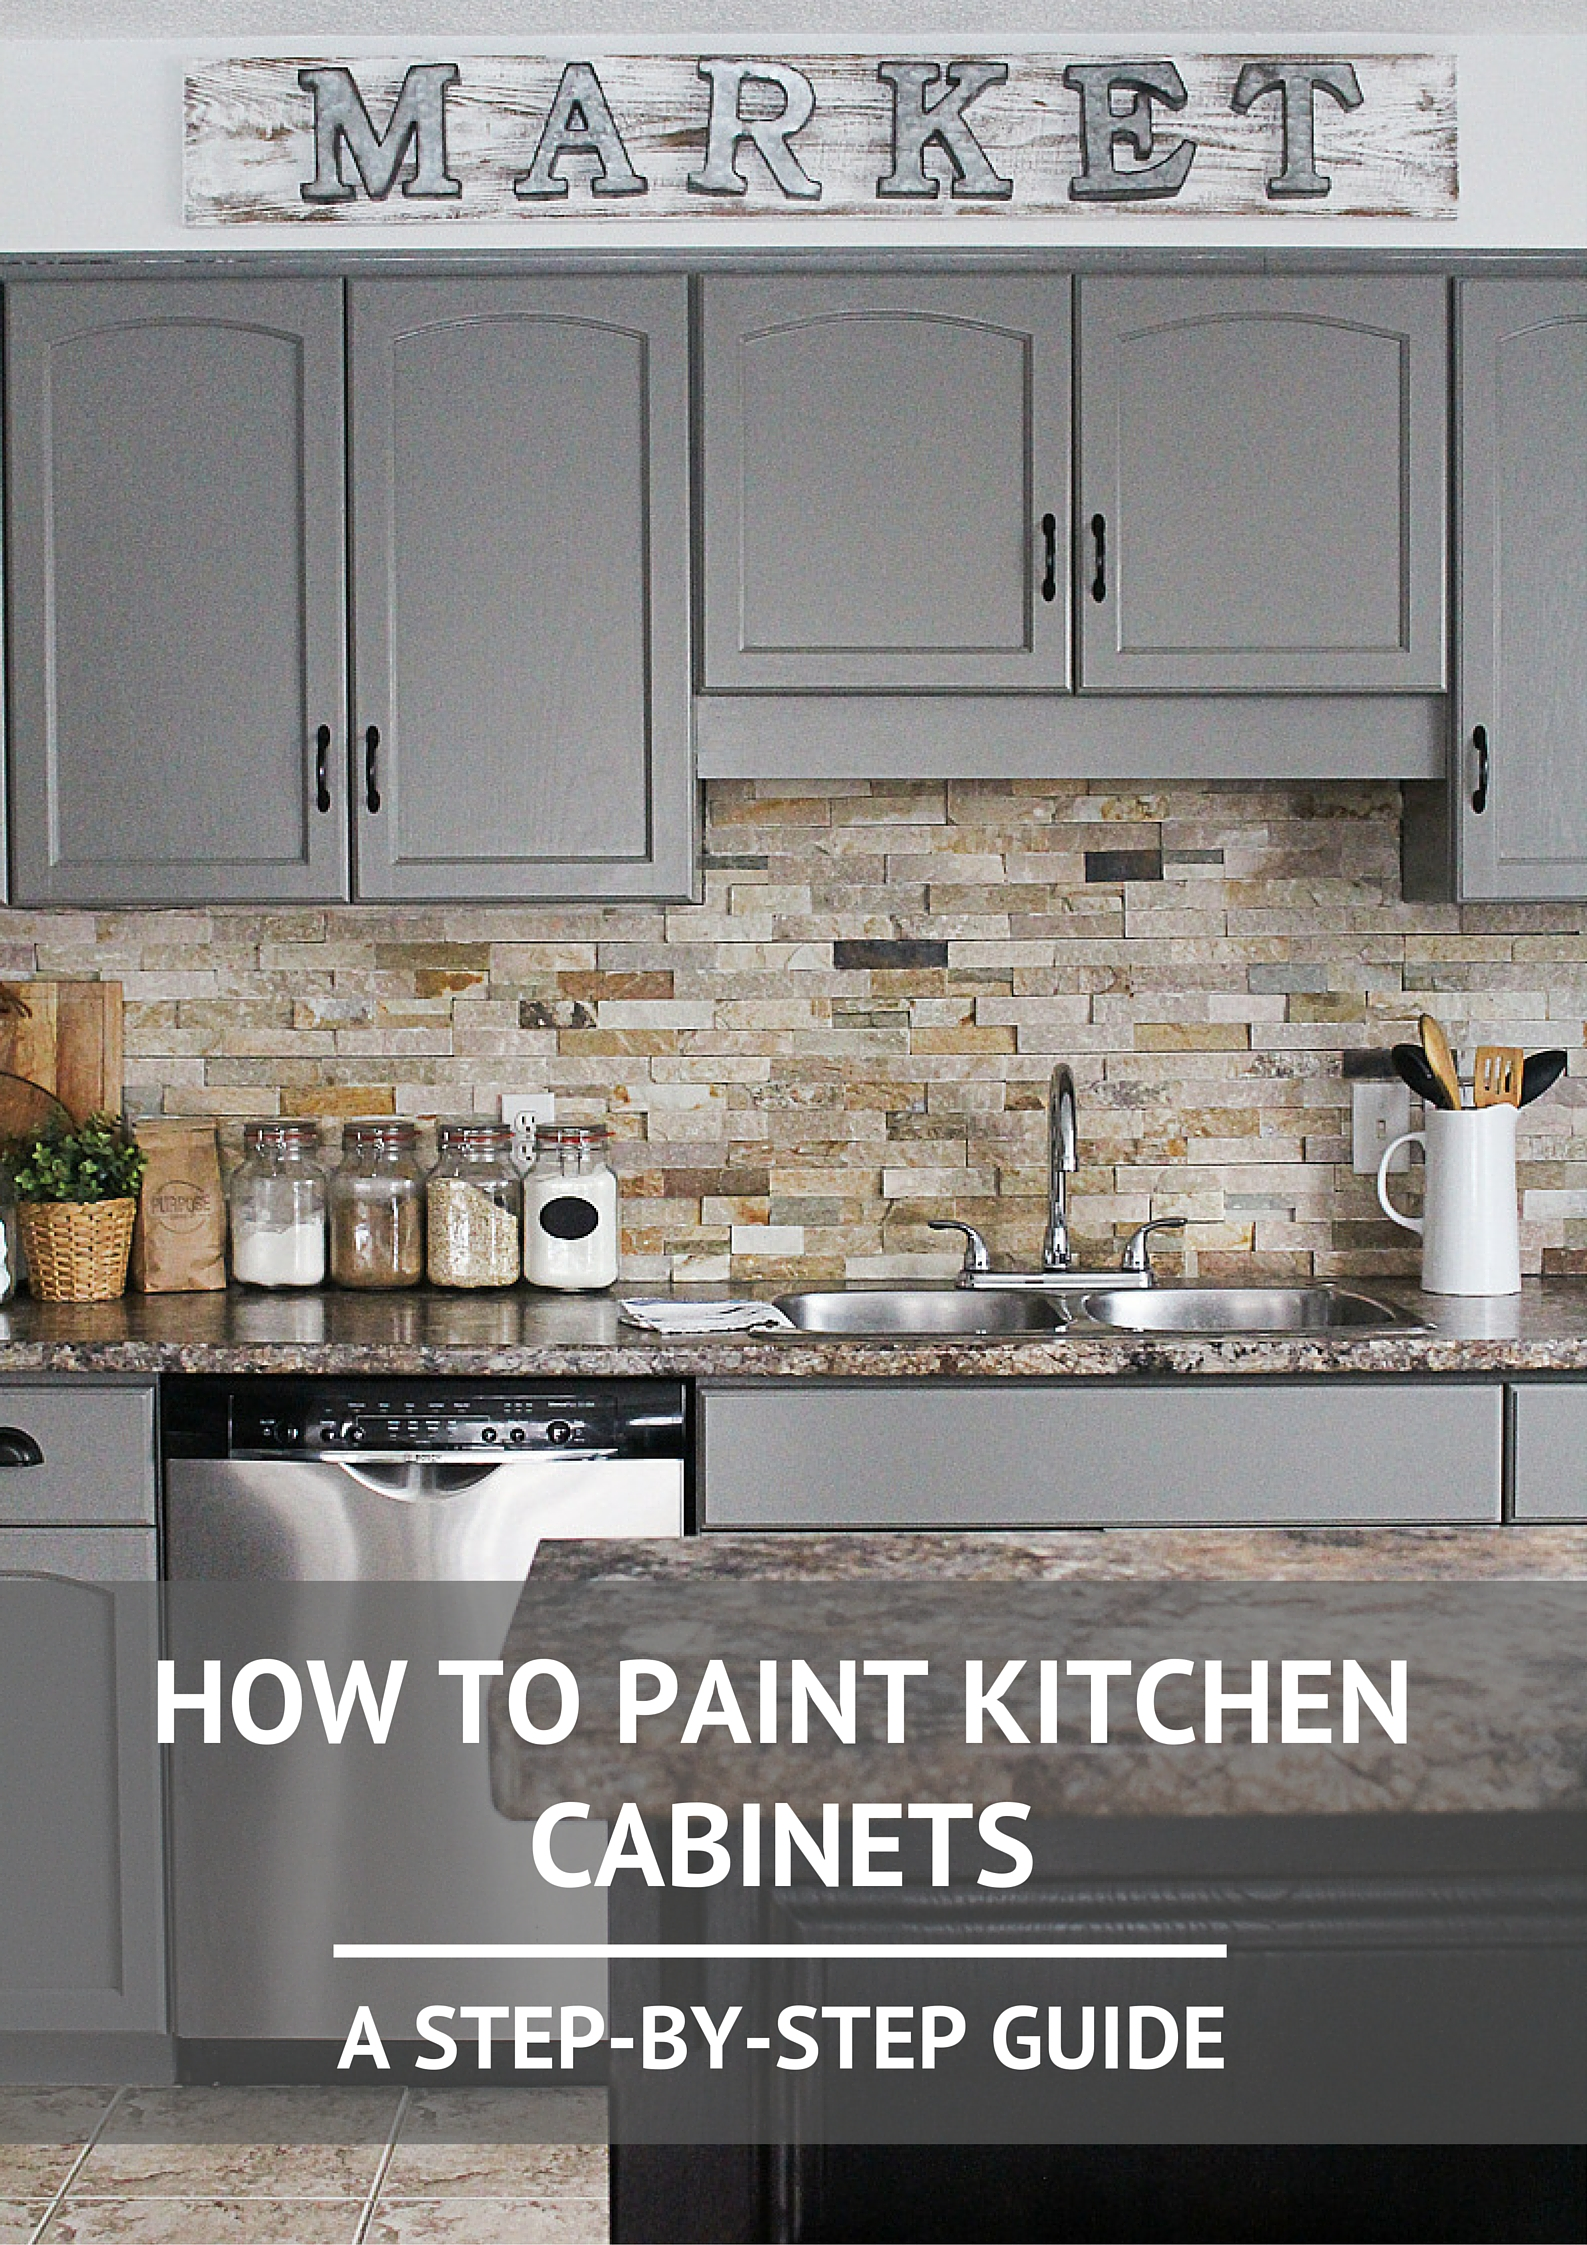 How To Paint Kitchen Cabinets Kassandra DeKoning - What kind of paint for kitchen cabinets